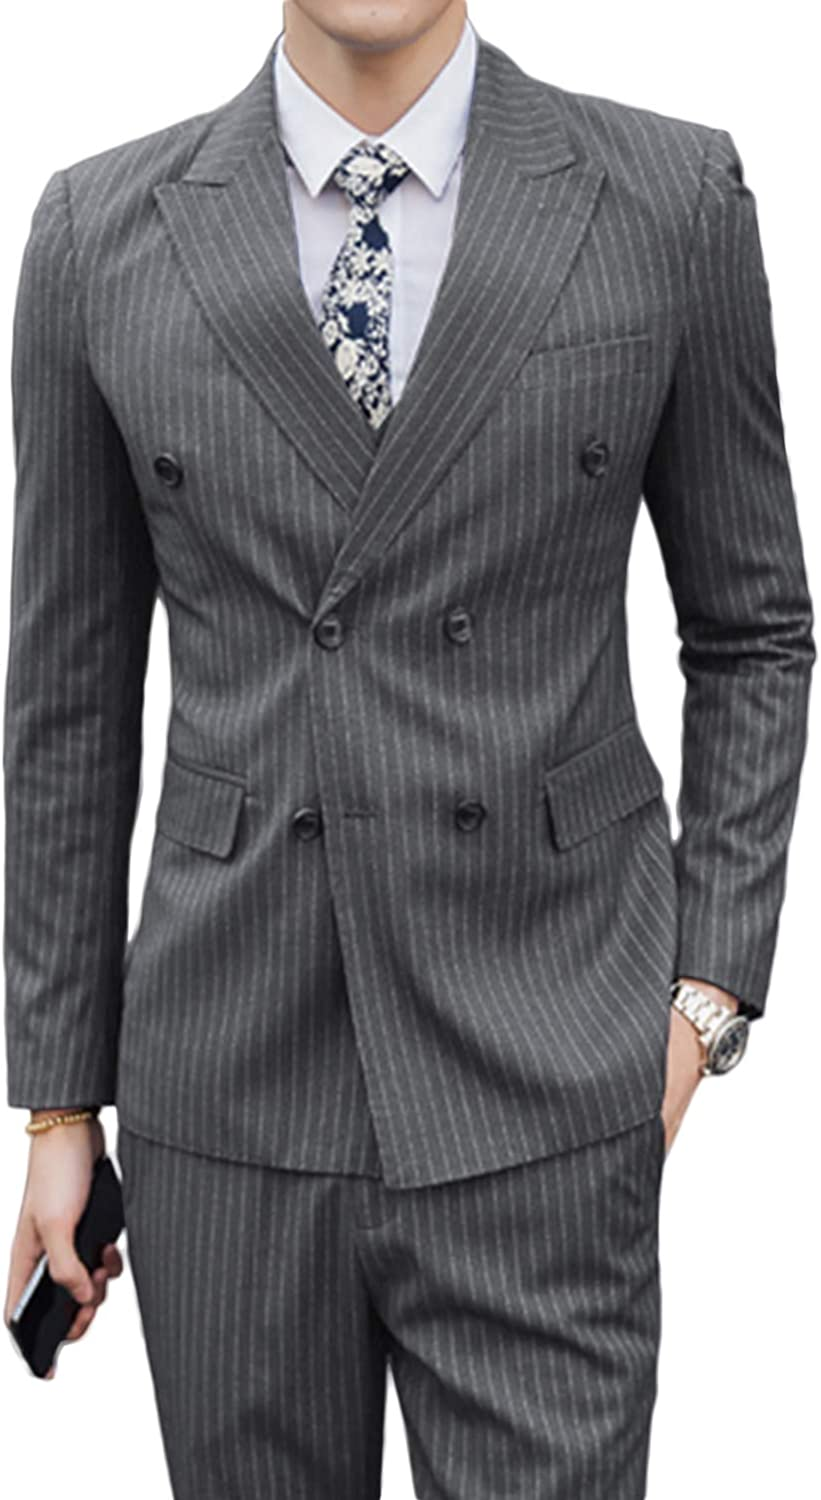 Setwell Mens Fashion Stripes Formal Business Double Breasted Suit 2 Piece